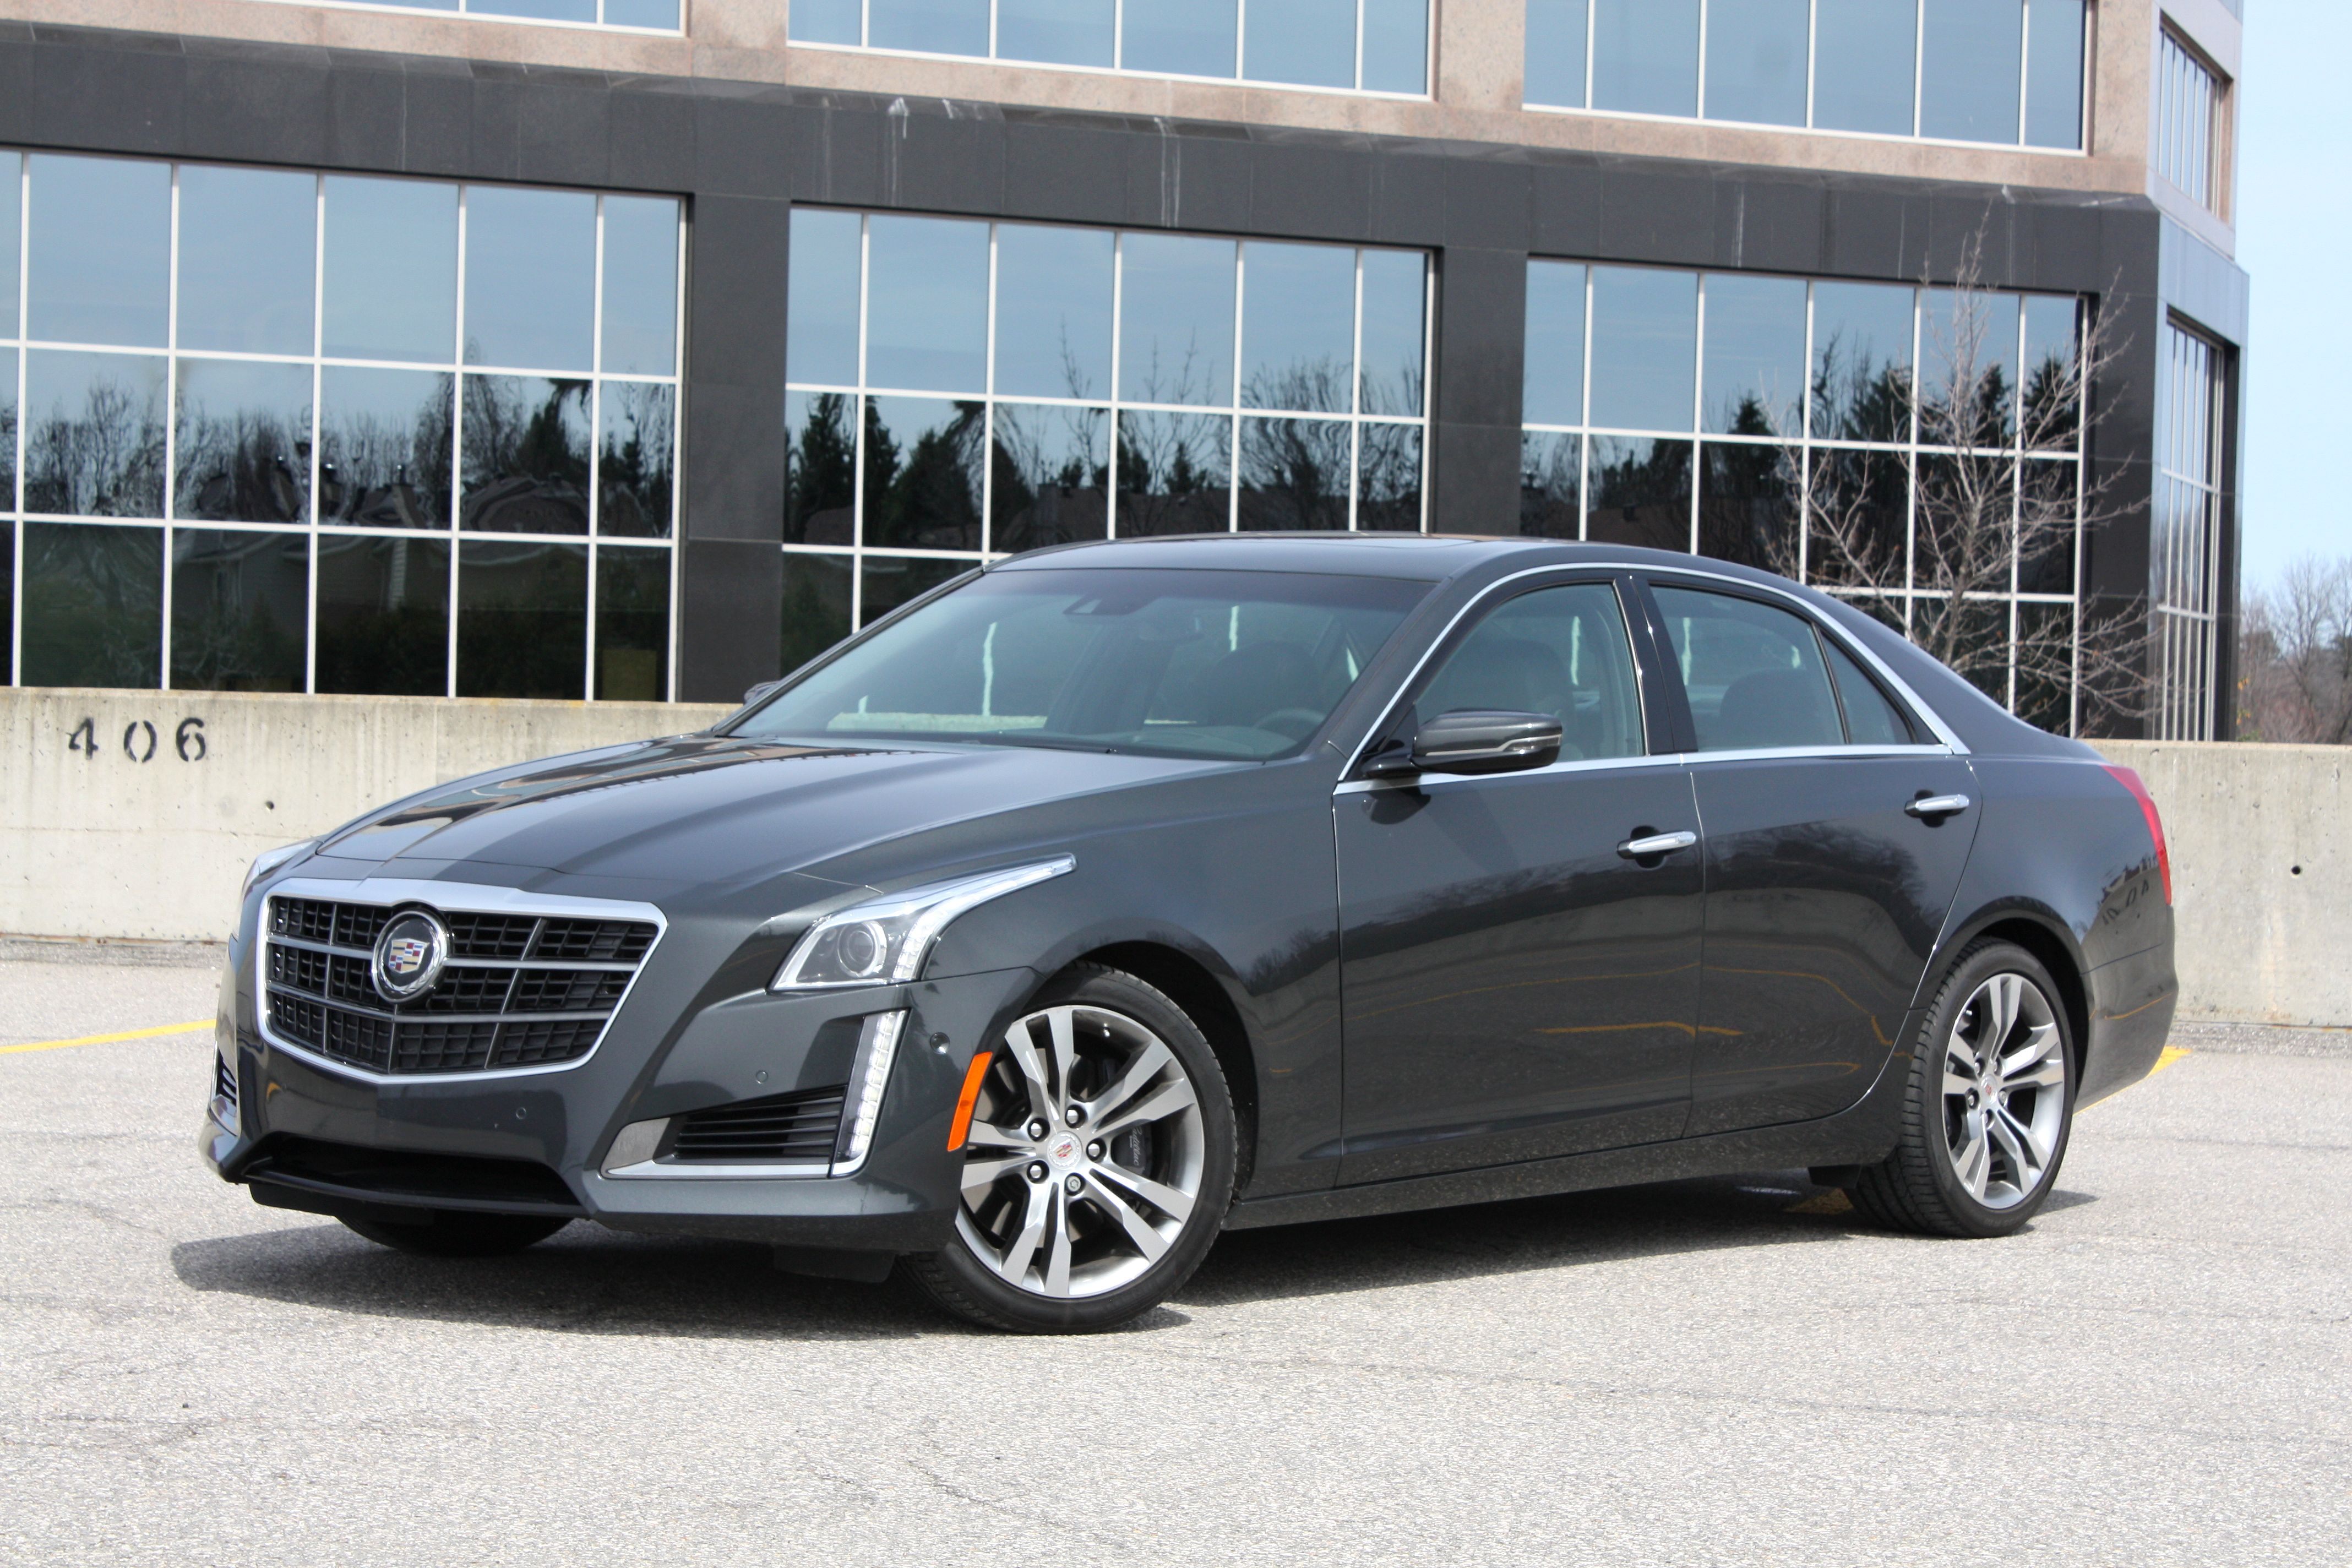 2014 Cadillac Cts V Sport CHASE 001